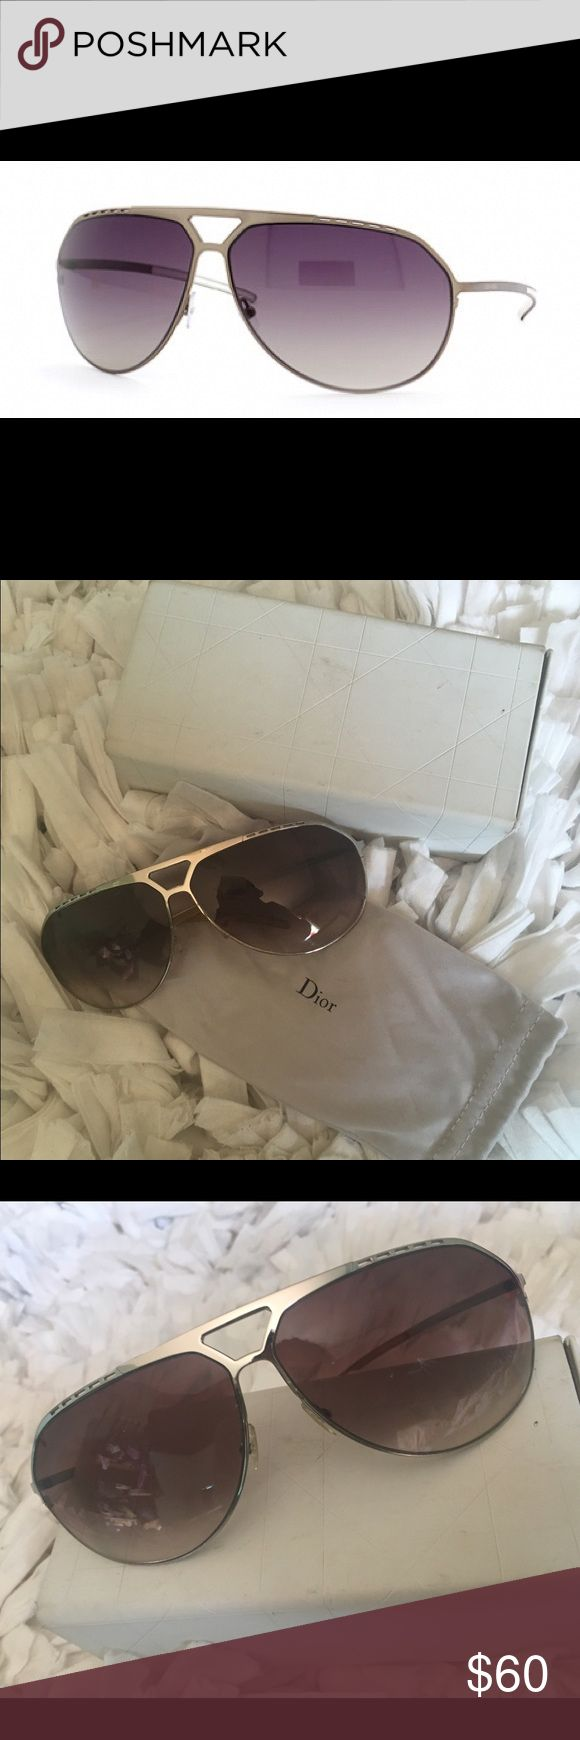 Christian Dior Sunglasses Dior Homme Sunglasses 0086/S 010W9 69 //Glasses come with dustbag and case//Case is damaged(pictured)//There is a very small scratch on one of the lenses, tried to take a photo of it but it wld not show up. Christian Dior Accessories Sunglasses